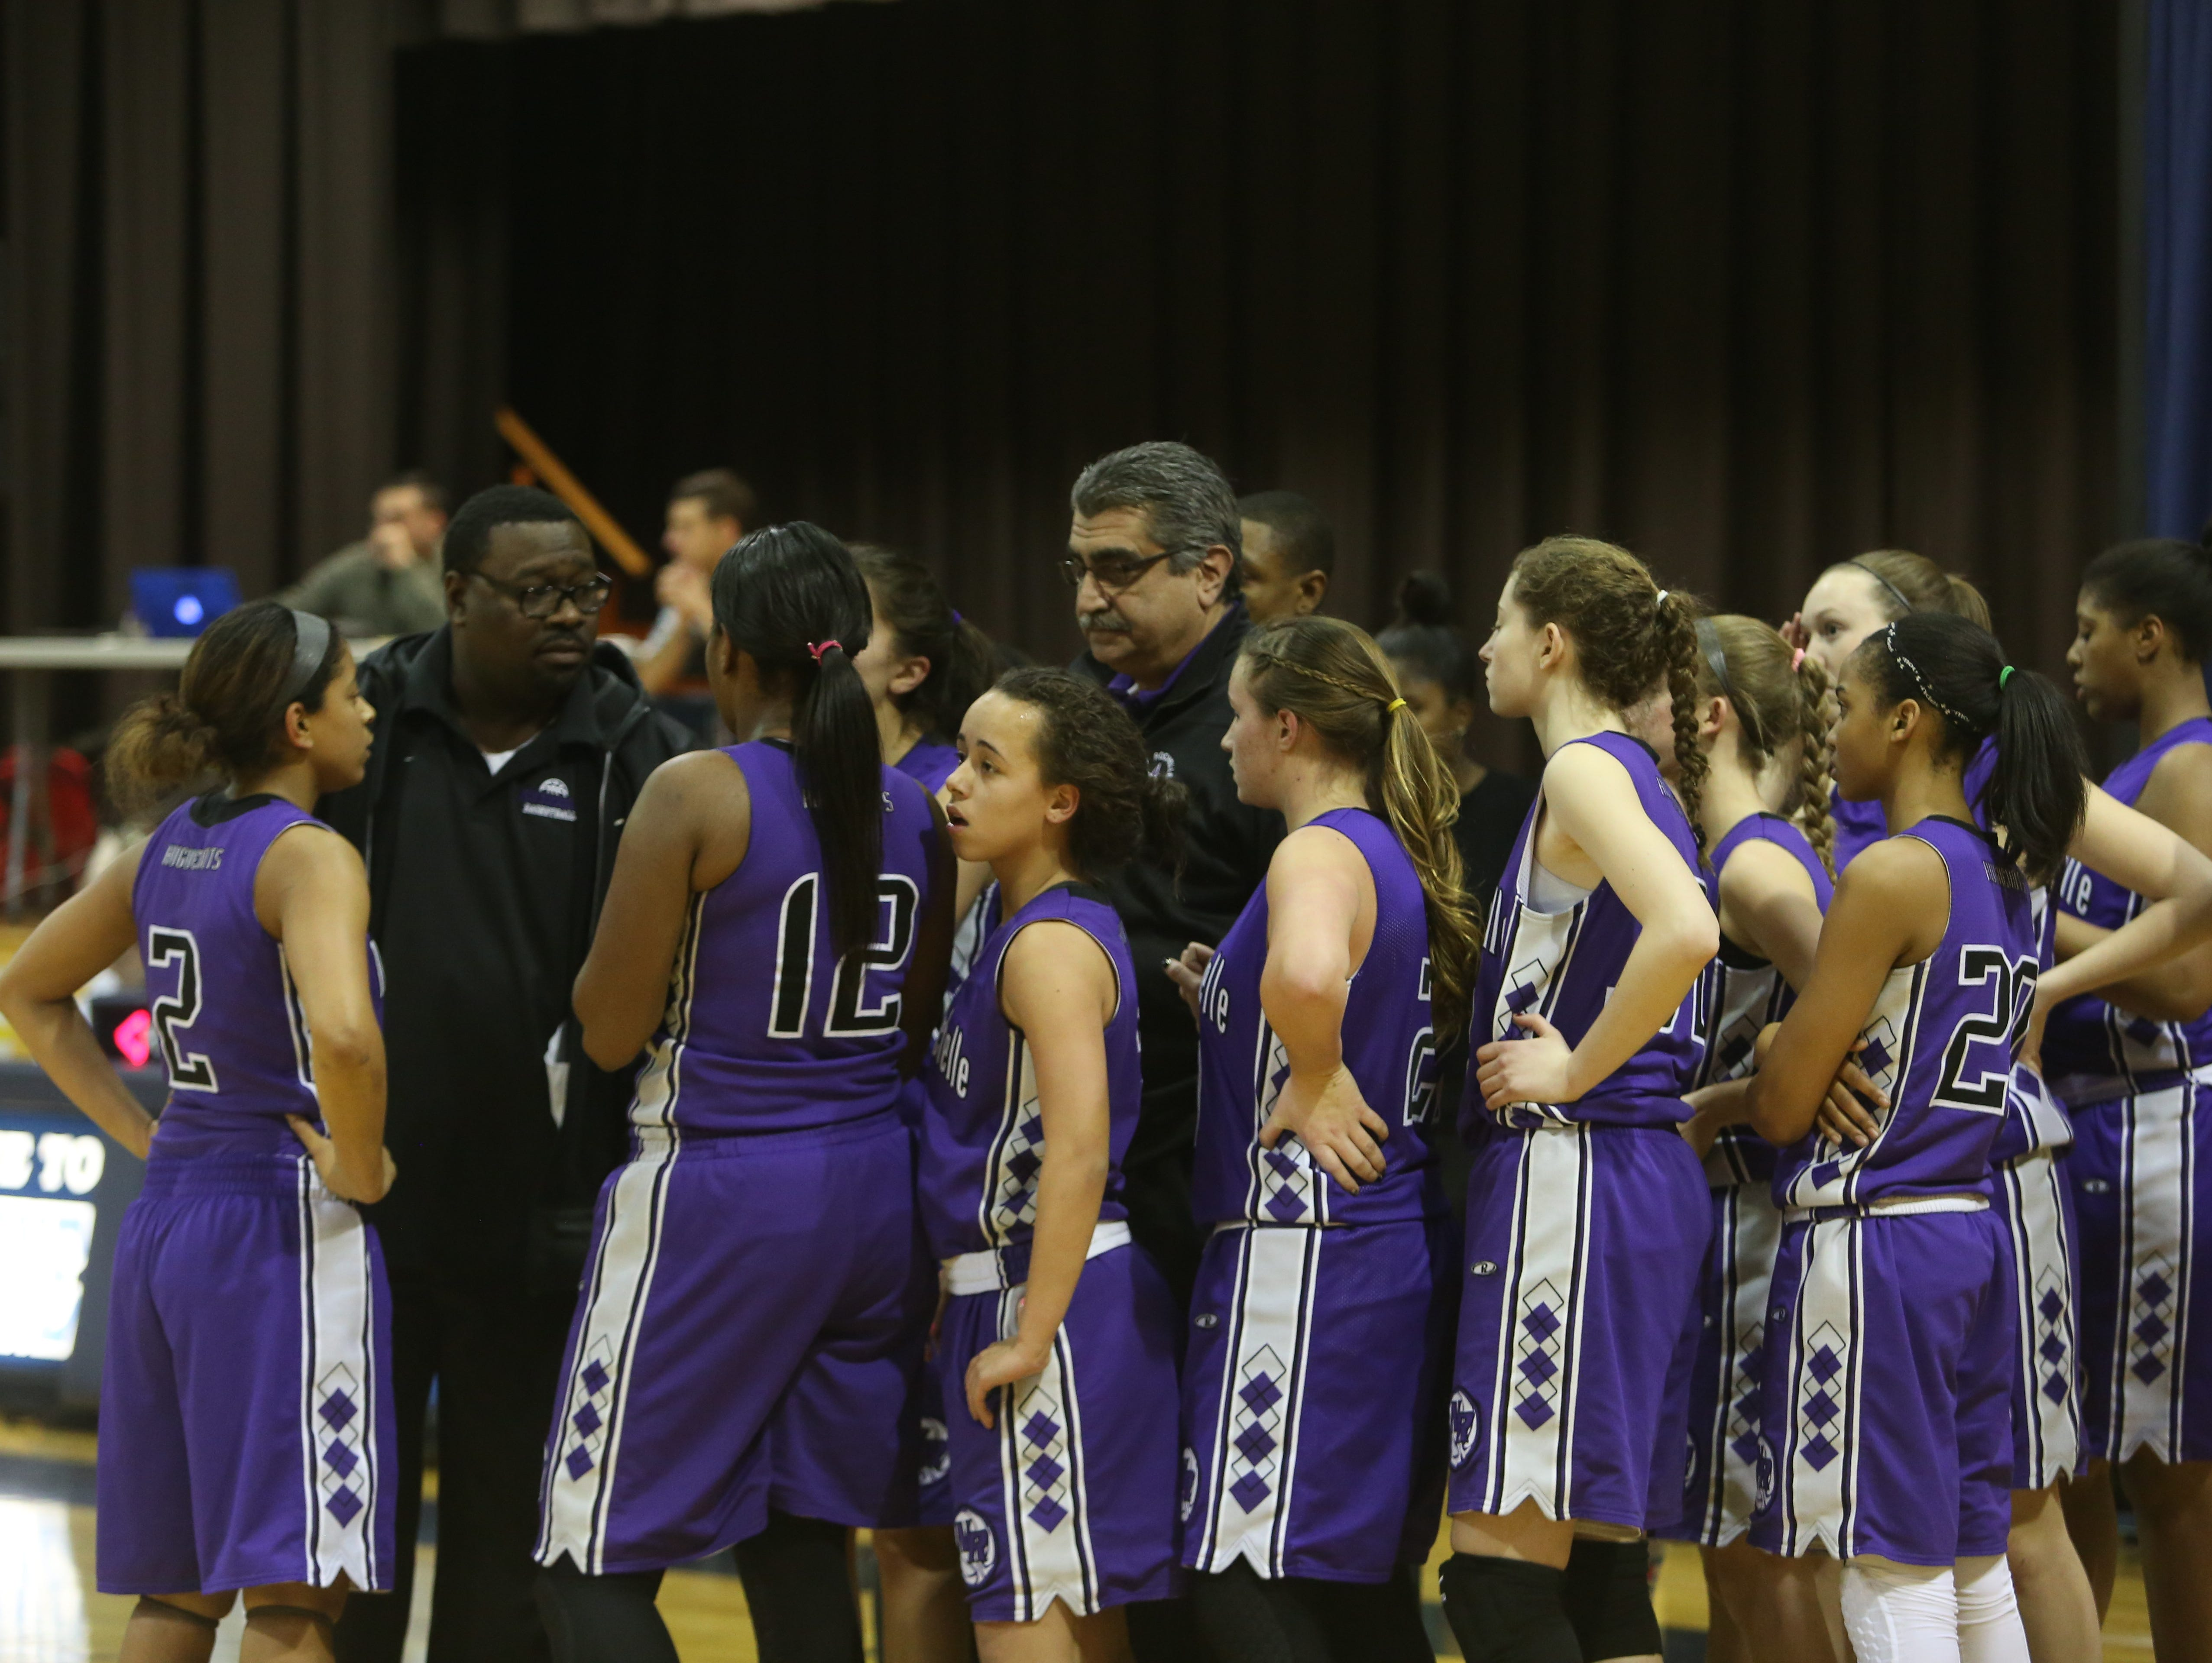 New Rochelle coach Bob Bynum (second from left) talks to the team during a girls basketball game at Ursuline High School in New Rochelle Jan. 21, 2015.